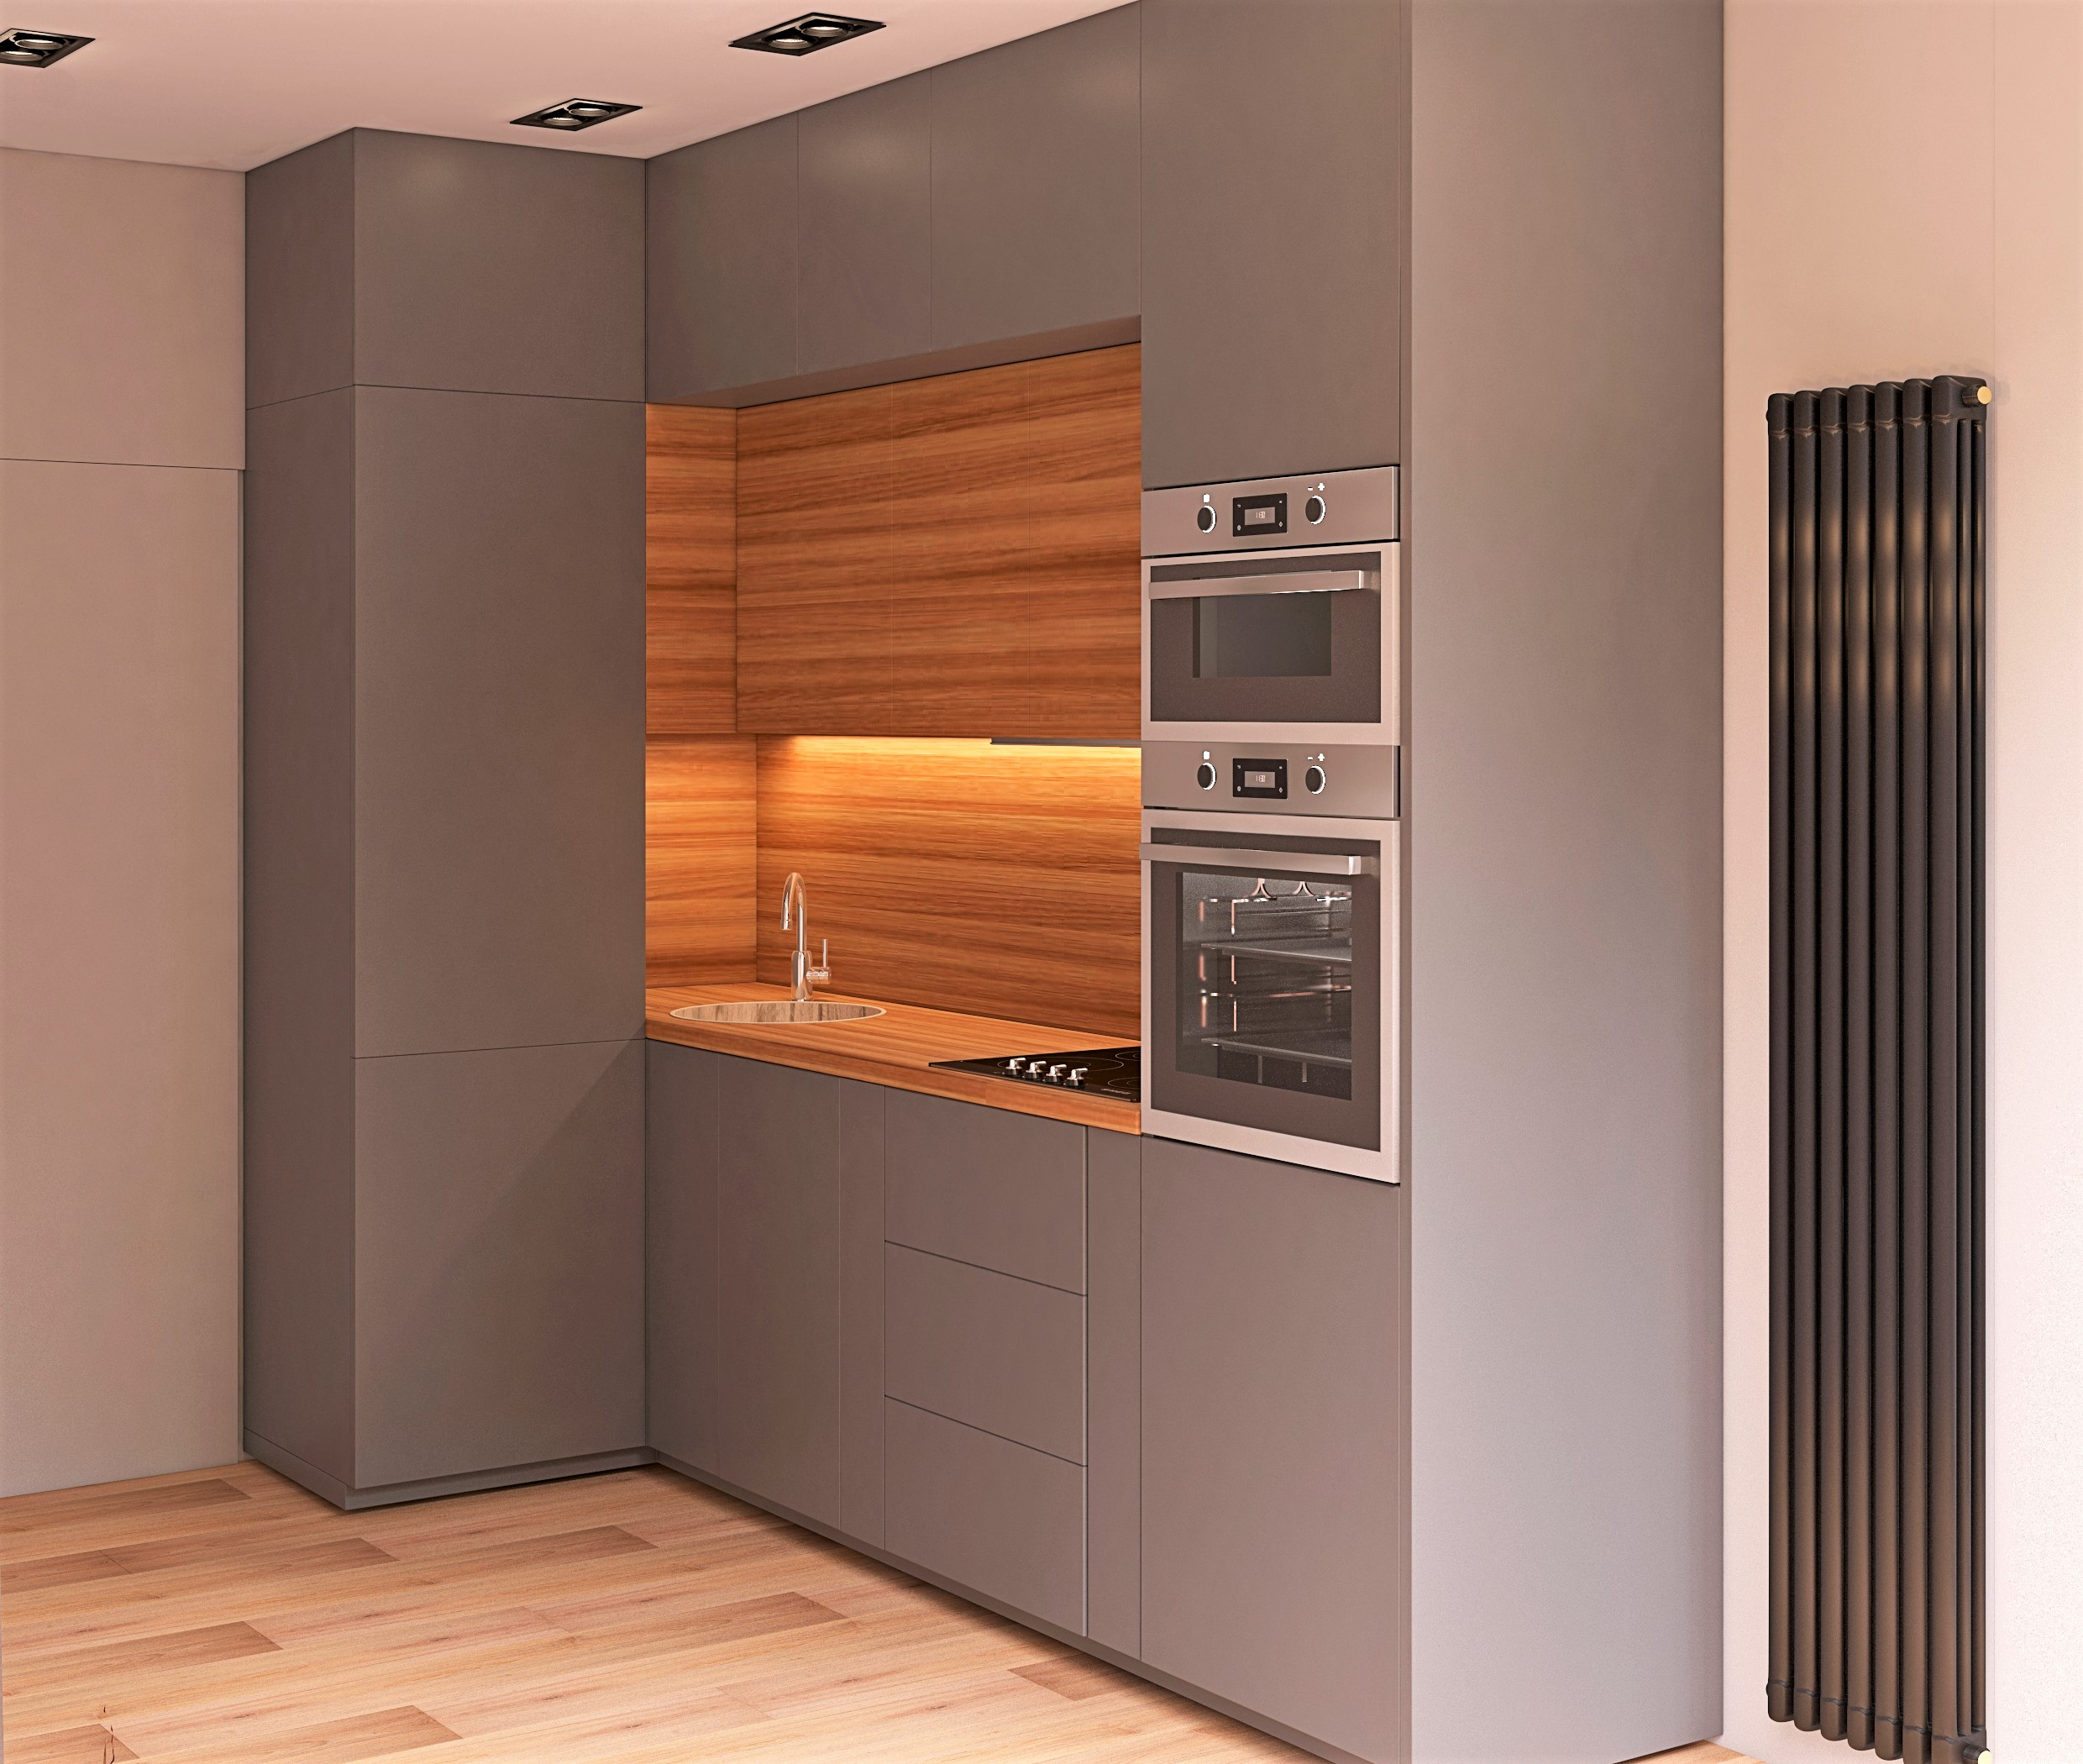 Kitchen design project in 3d max vray 3.0 image